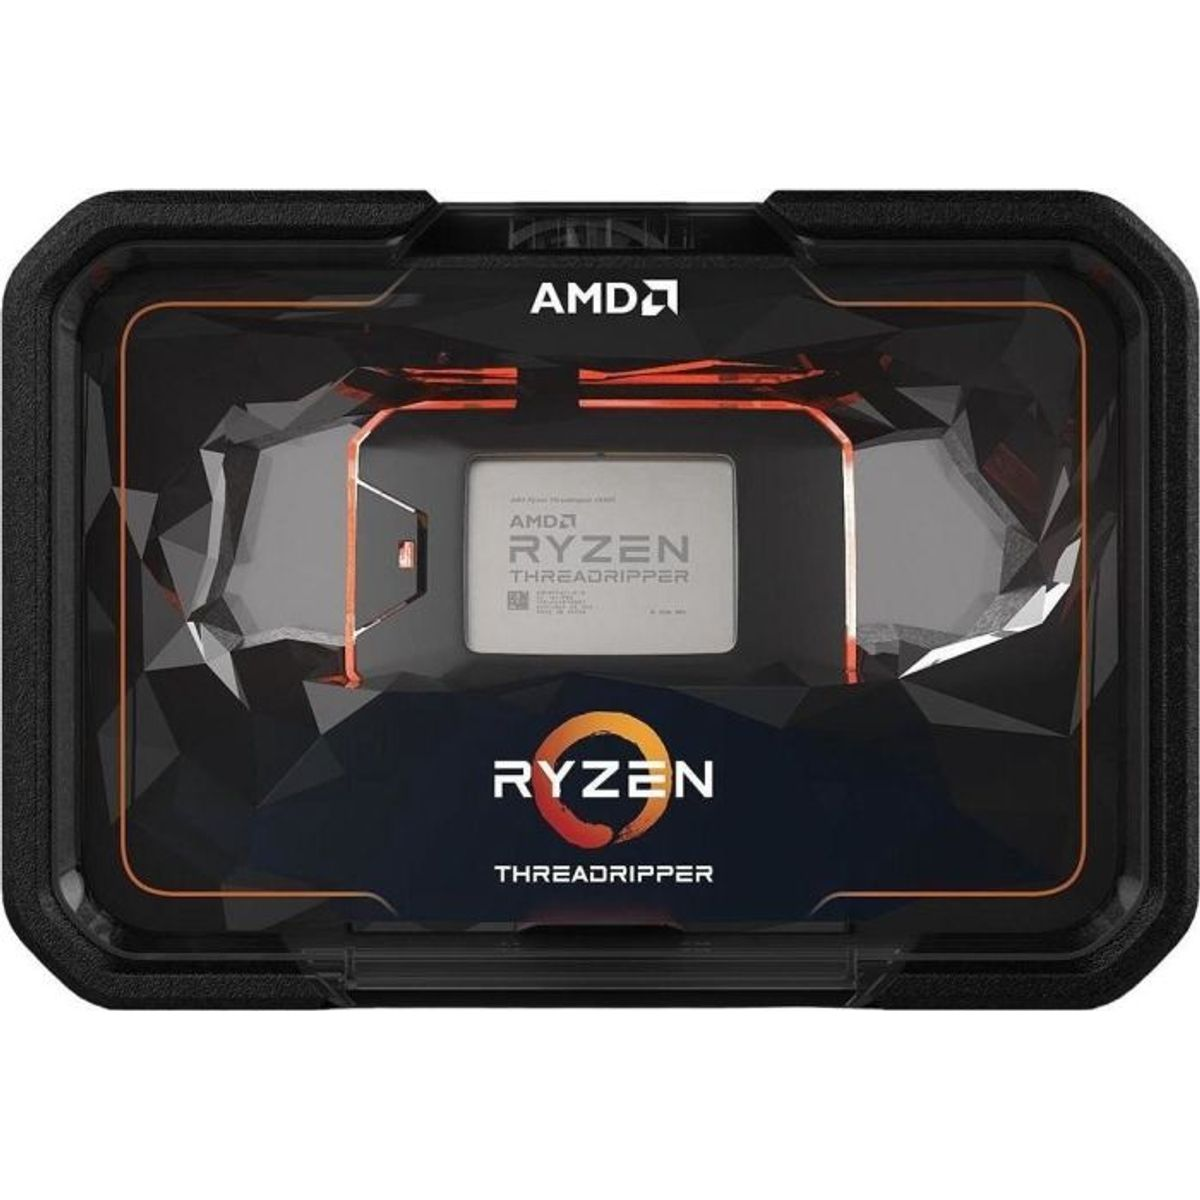 YD295XA8AFWOF AMD Ryzen Threadripper 2950X